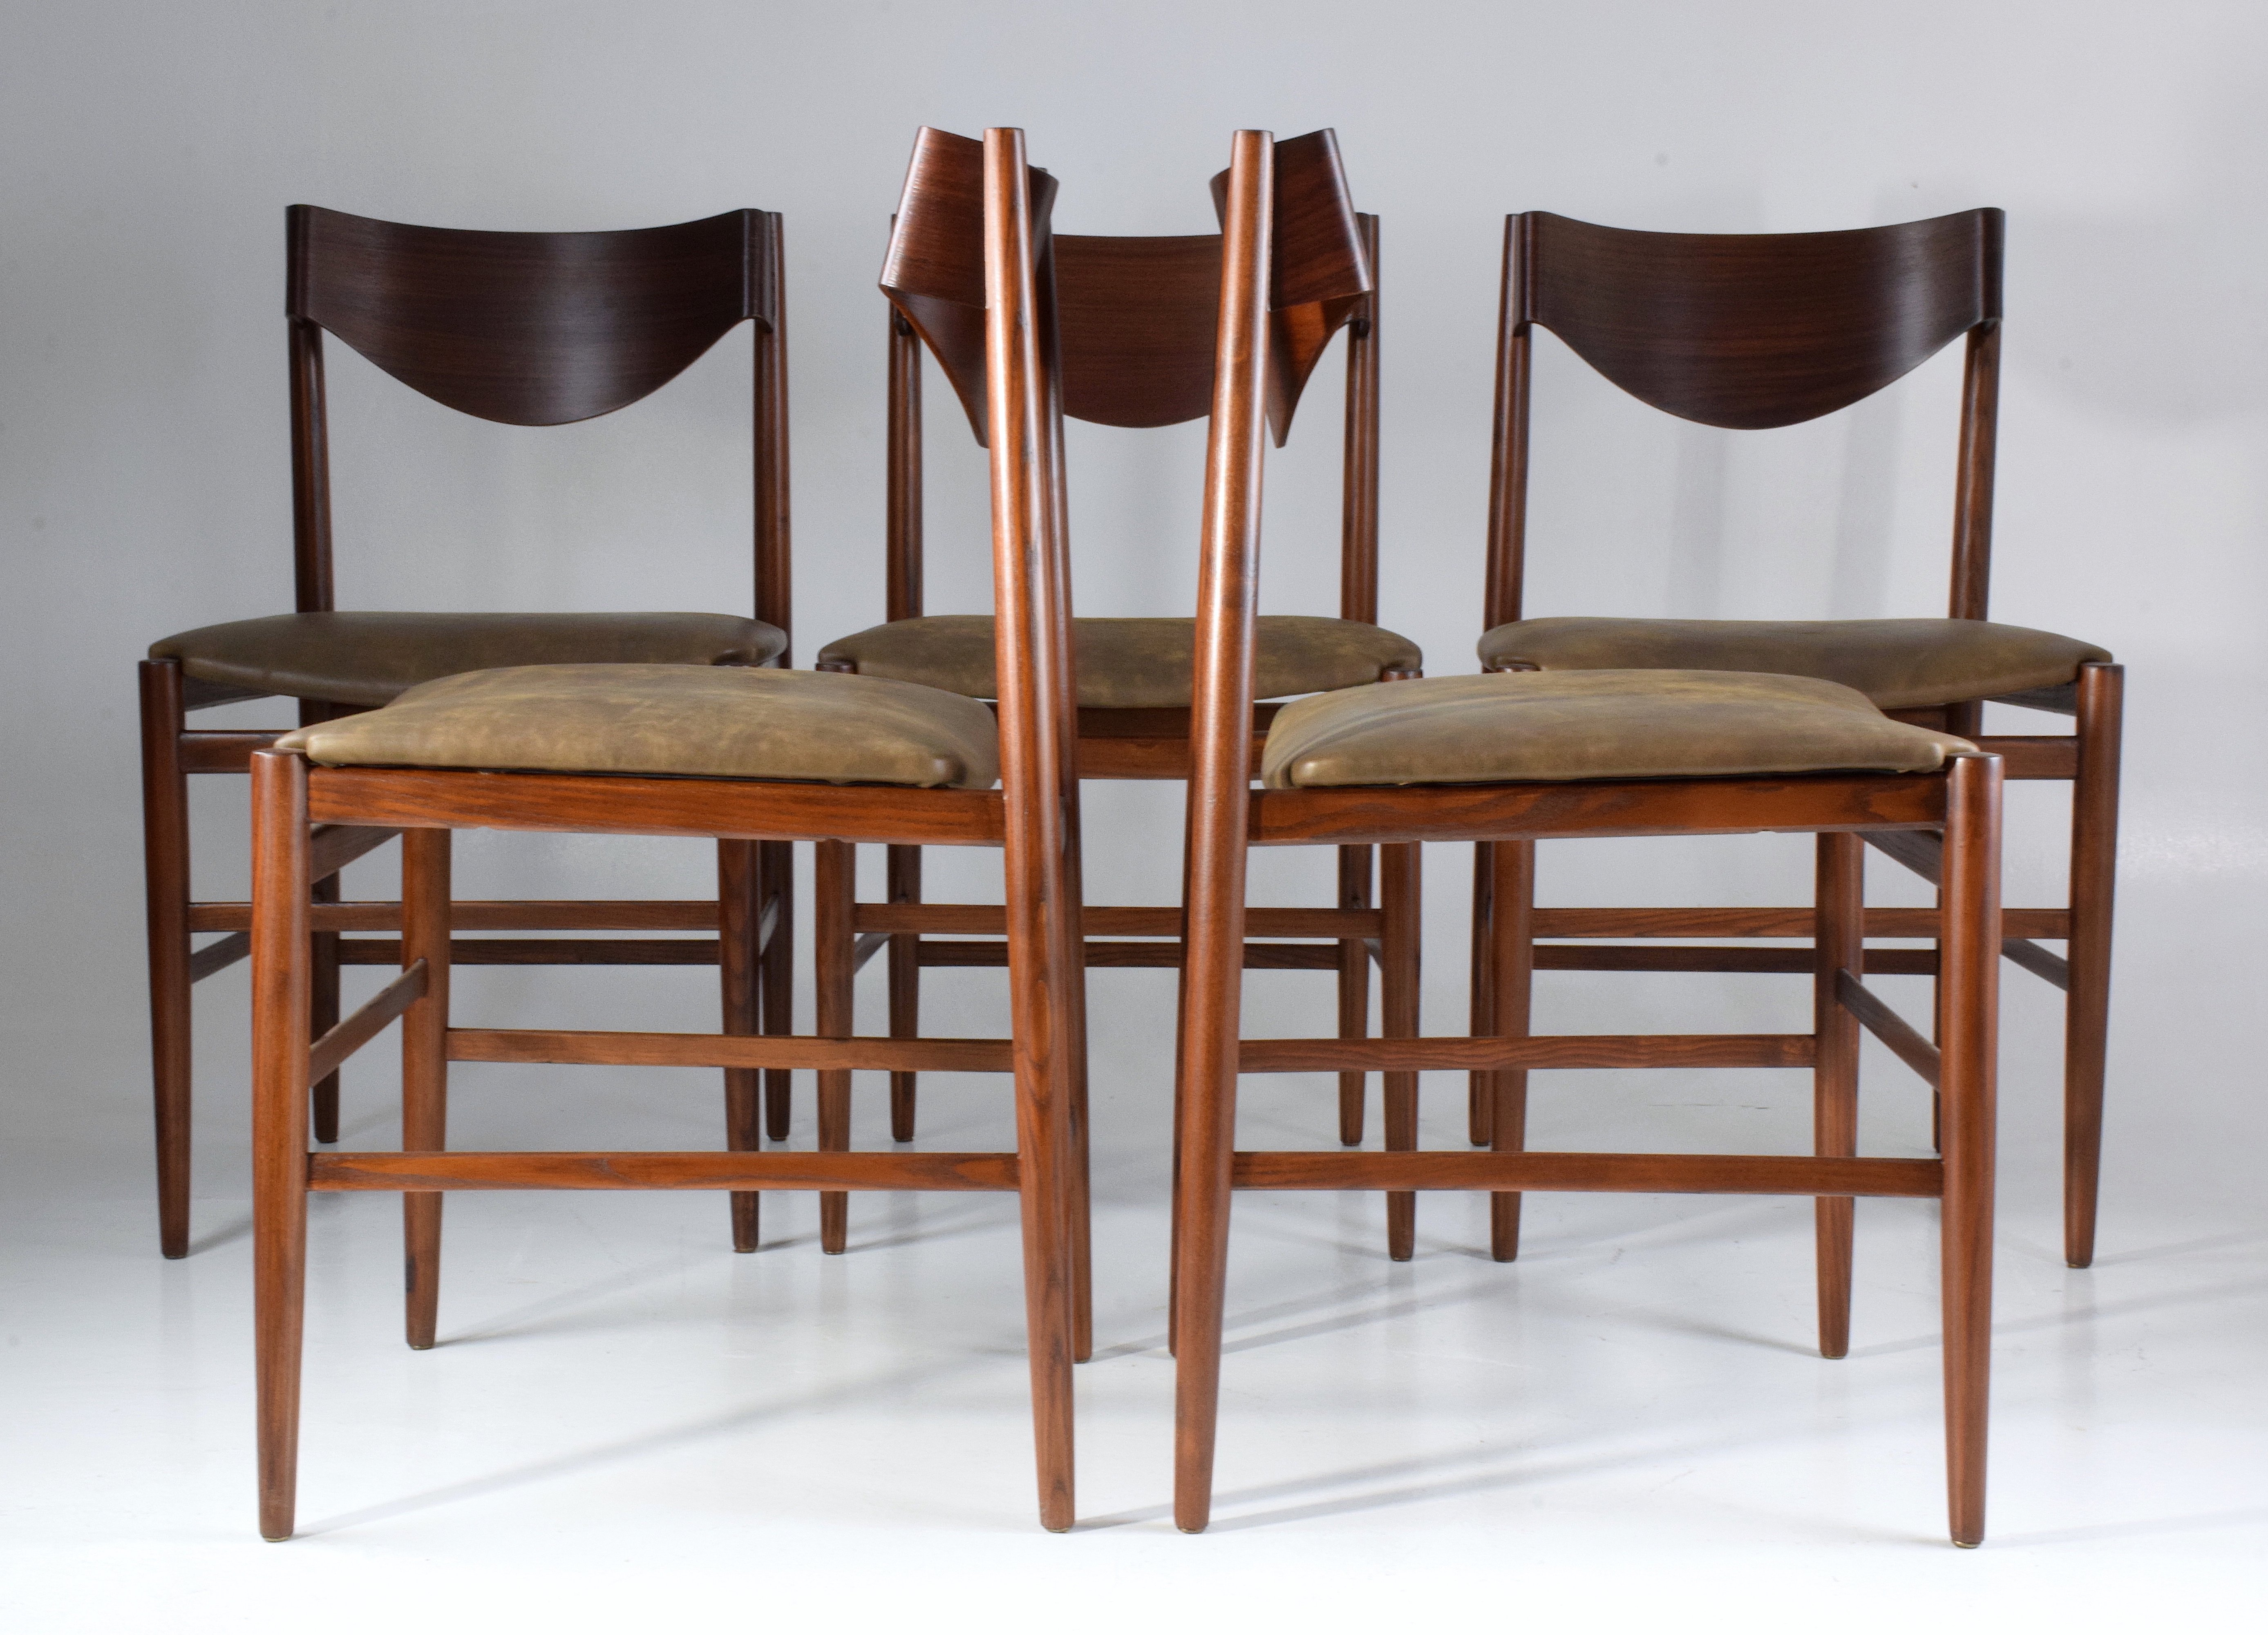 Set Of 5 Italian Curved Dining Chairs By Gianfranco Frattini, 1950s